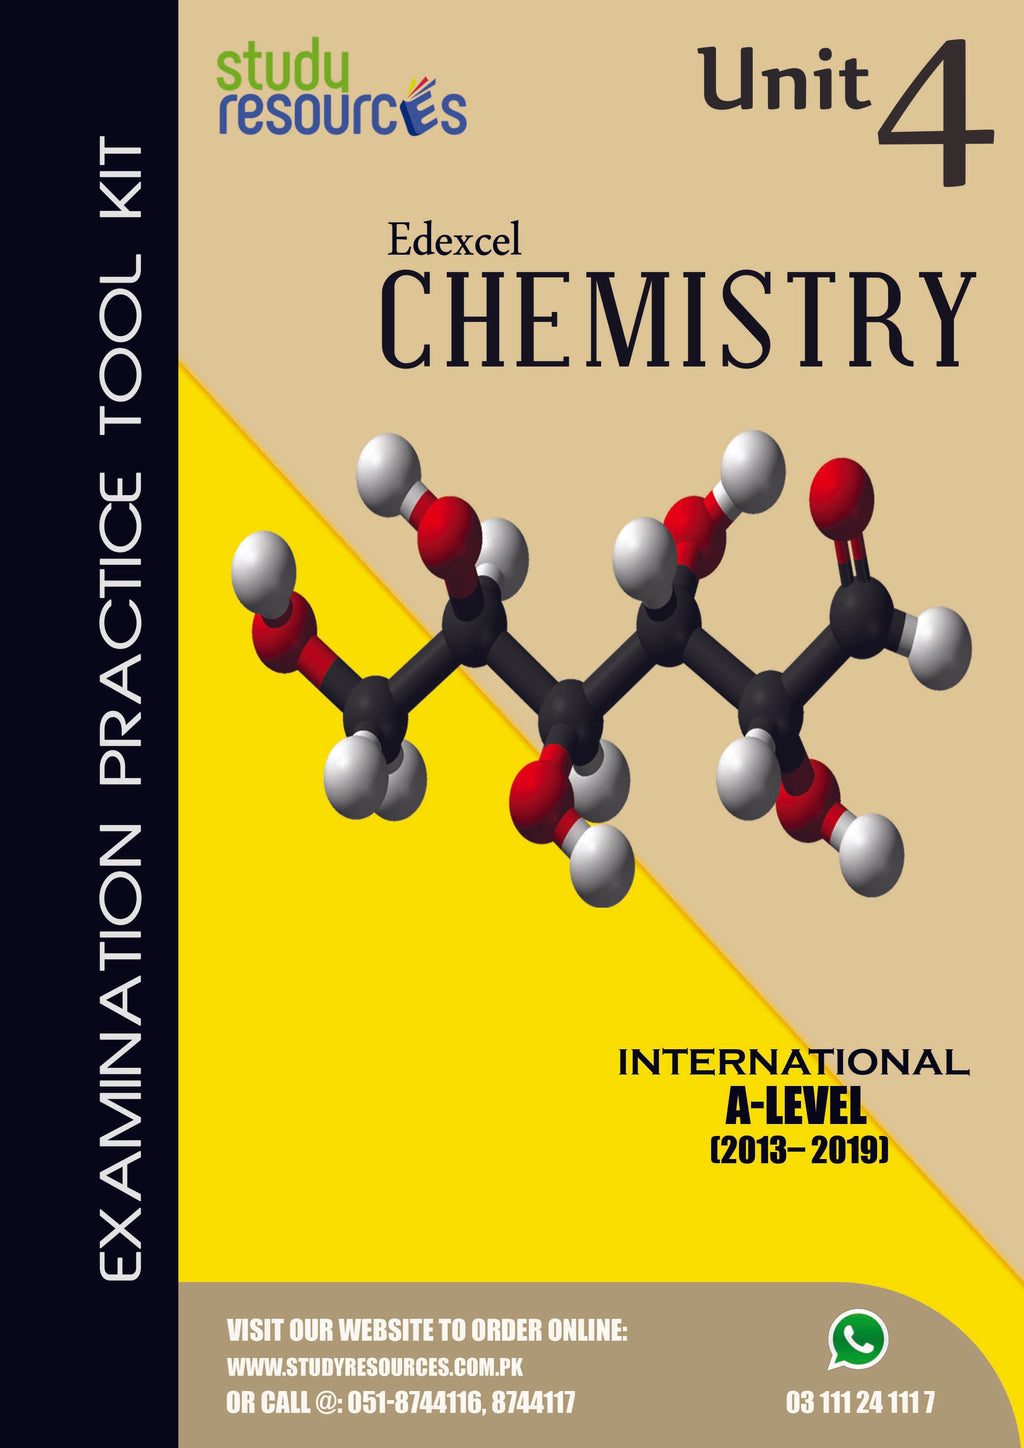 Edexcel A-Level Chemistry Unit-4 Past Papers (2013-2019)